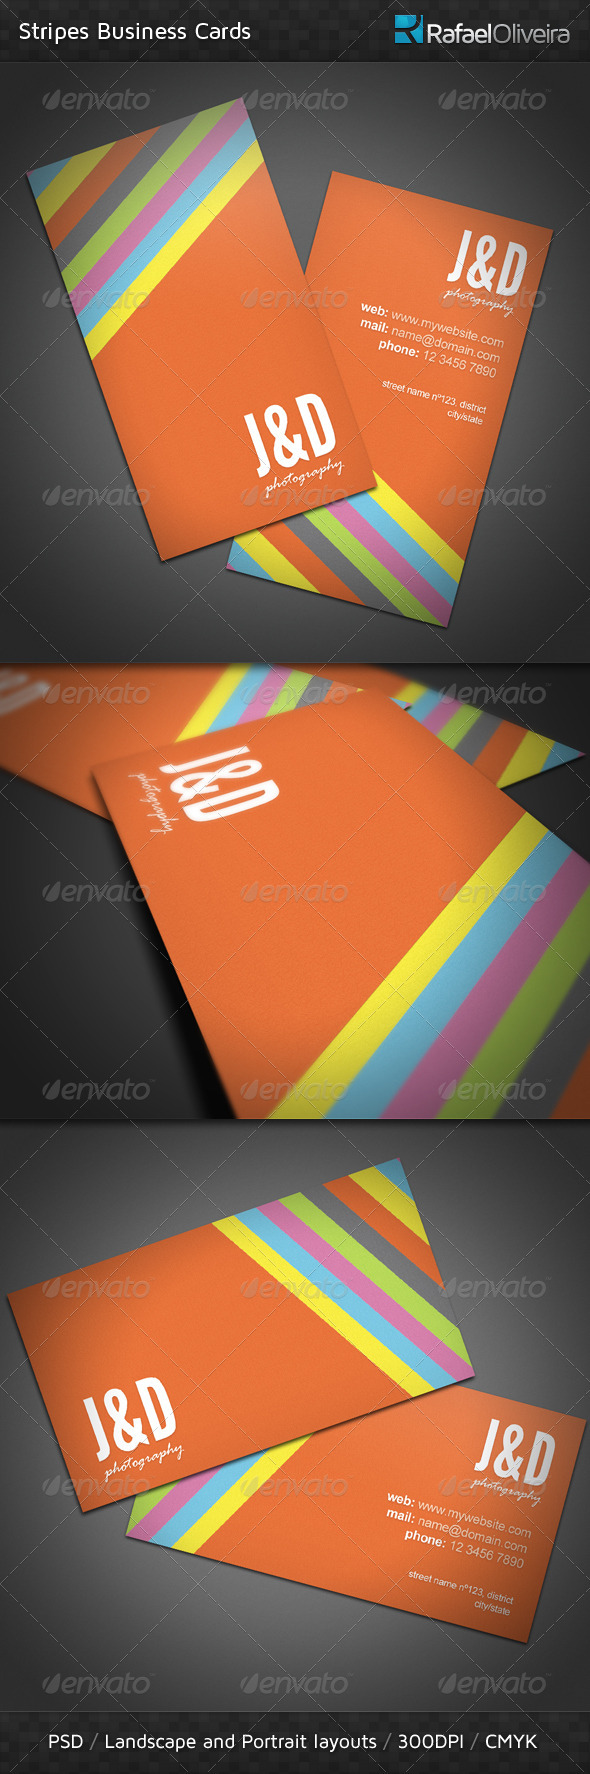 Stripes Business Card - Creative Business Cards